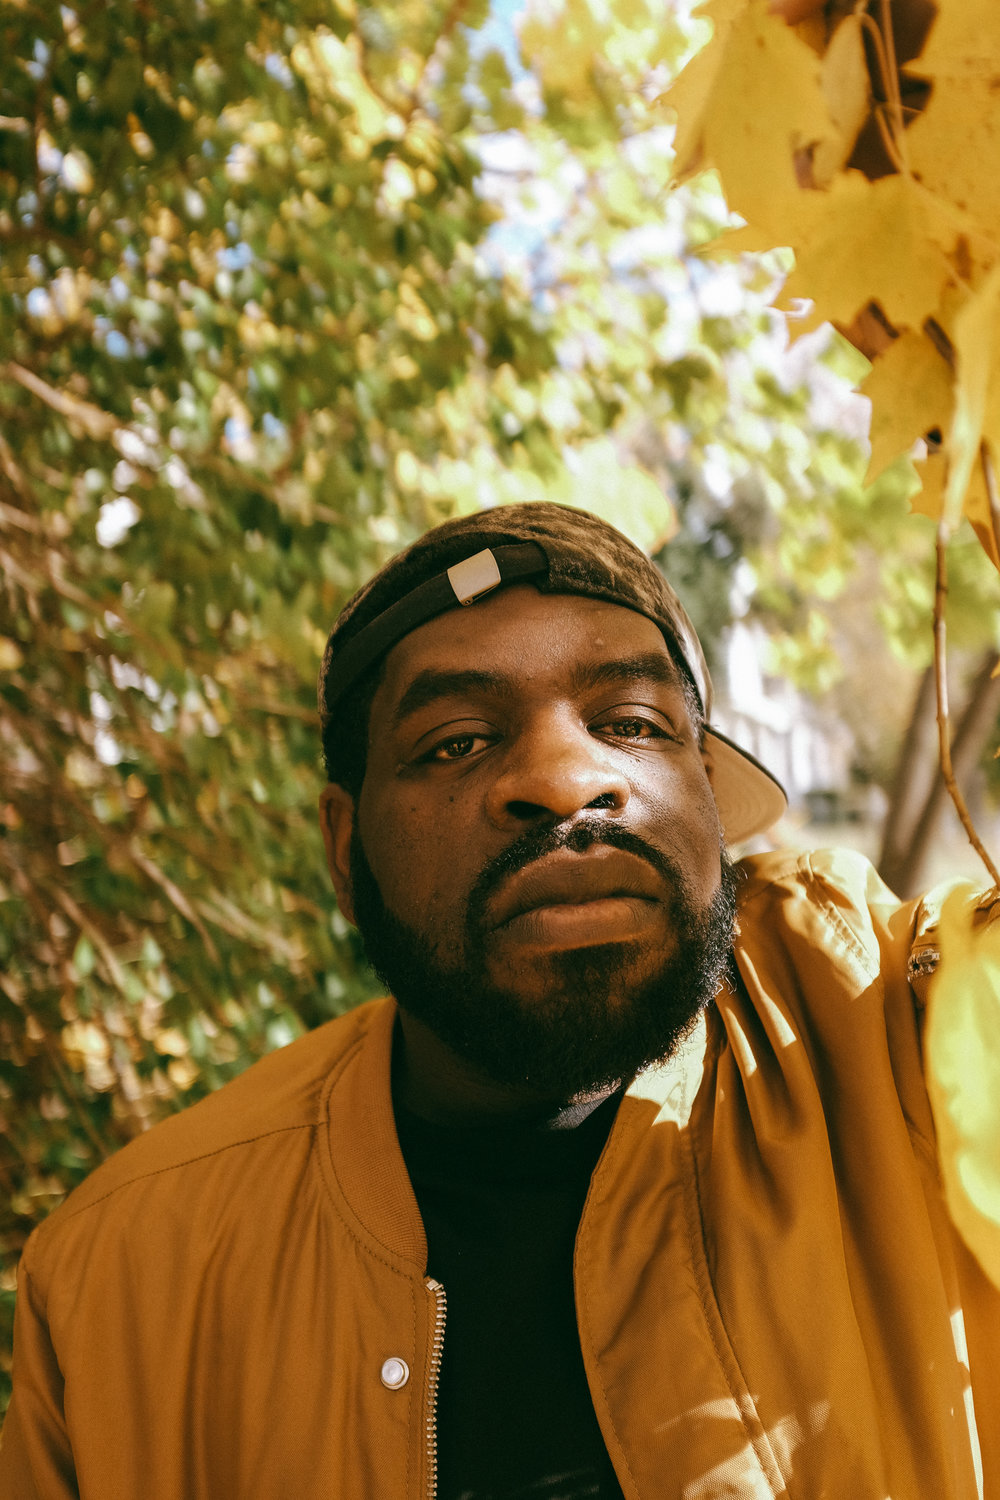 Abdurraqib Author Photo 2 (by Kate Sweeney).jpg